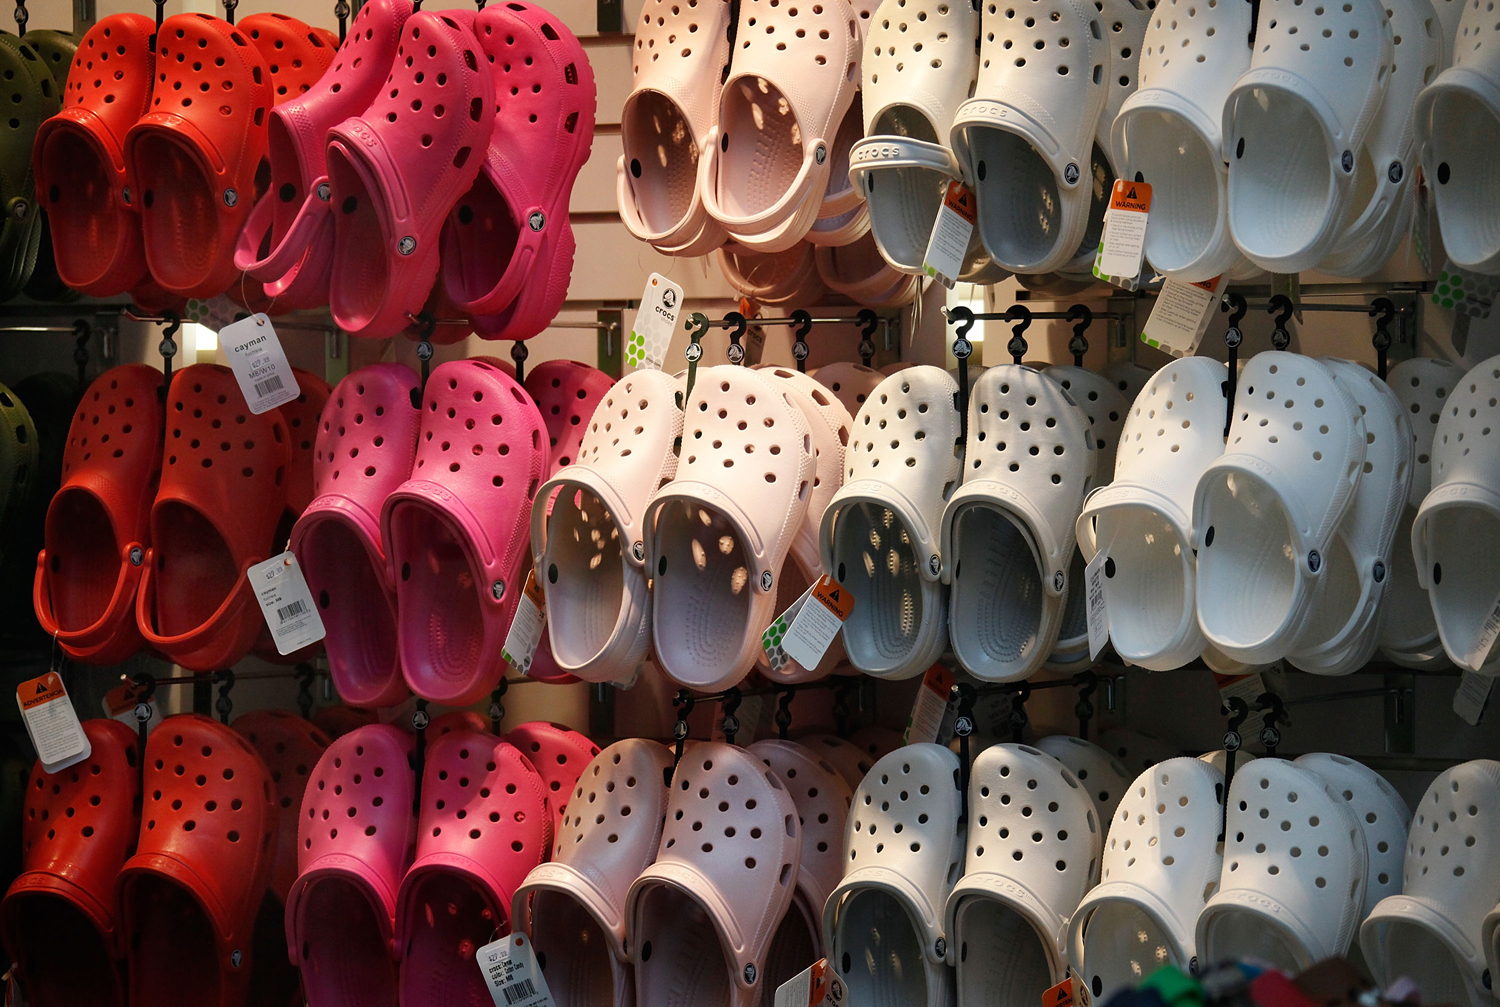 CHICAGO - JULY 23:  Crocs footwear is displayed in one of the company's retail stores July 23, 2009 in Chicago, Illinois. The struggling shoe manufact...